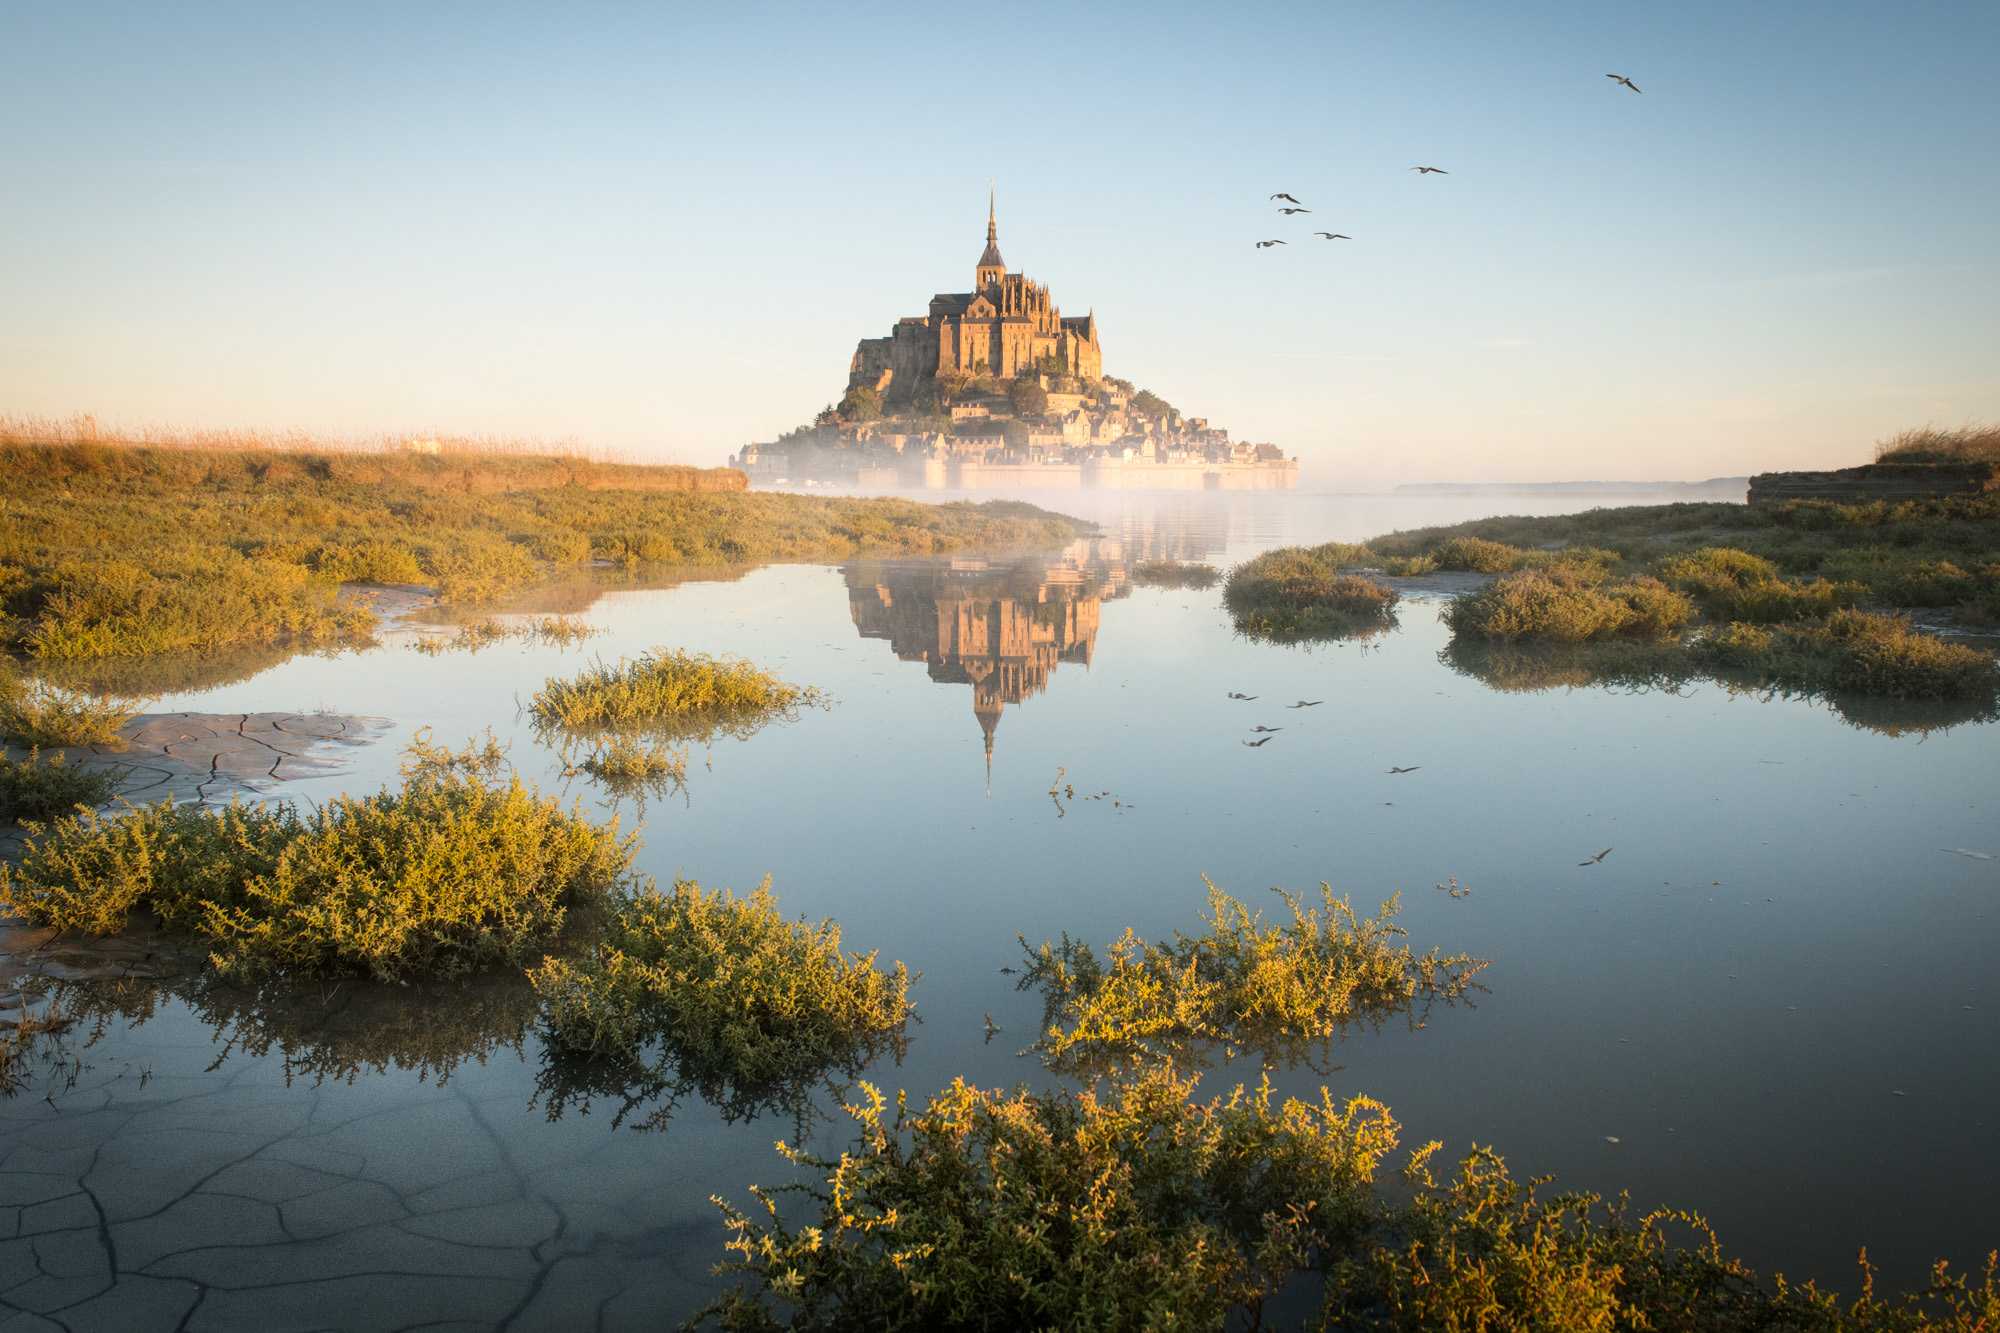 A fairytale castle above the marches in France with birds flying overhead